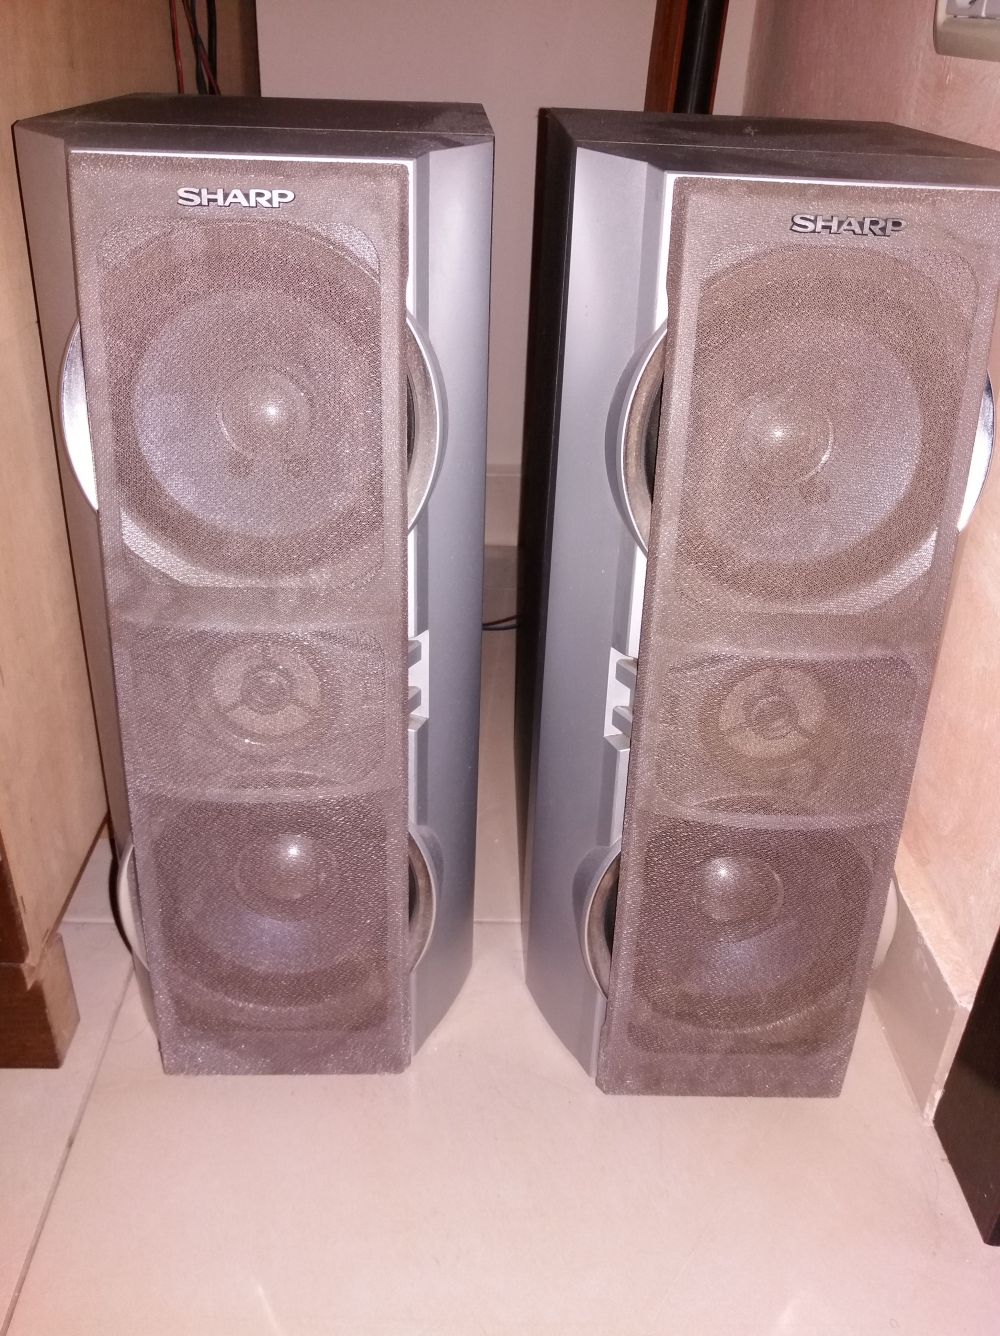 medium resolution of  only use the speakers on my computer because i am on a tight budget and those speakers have high quality sound here are some pictures of the speakers